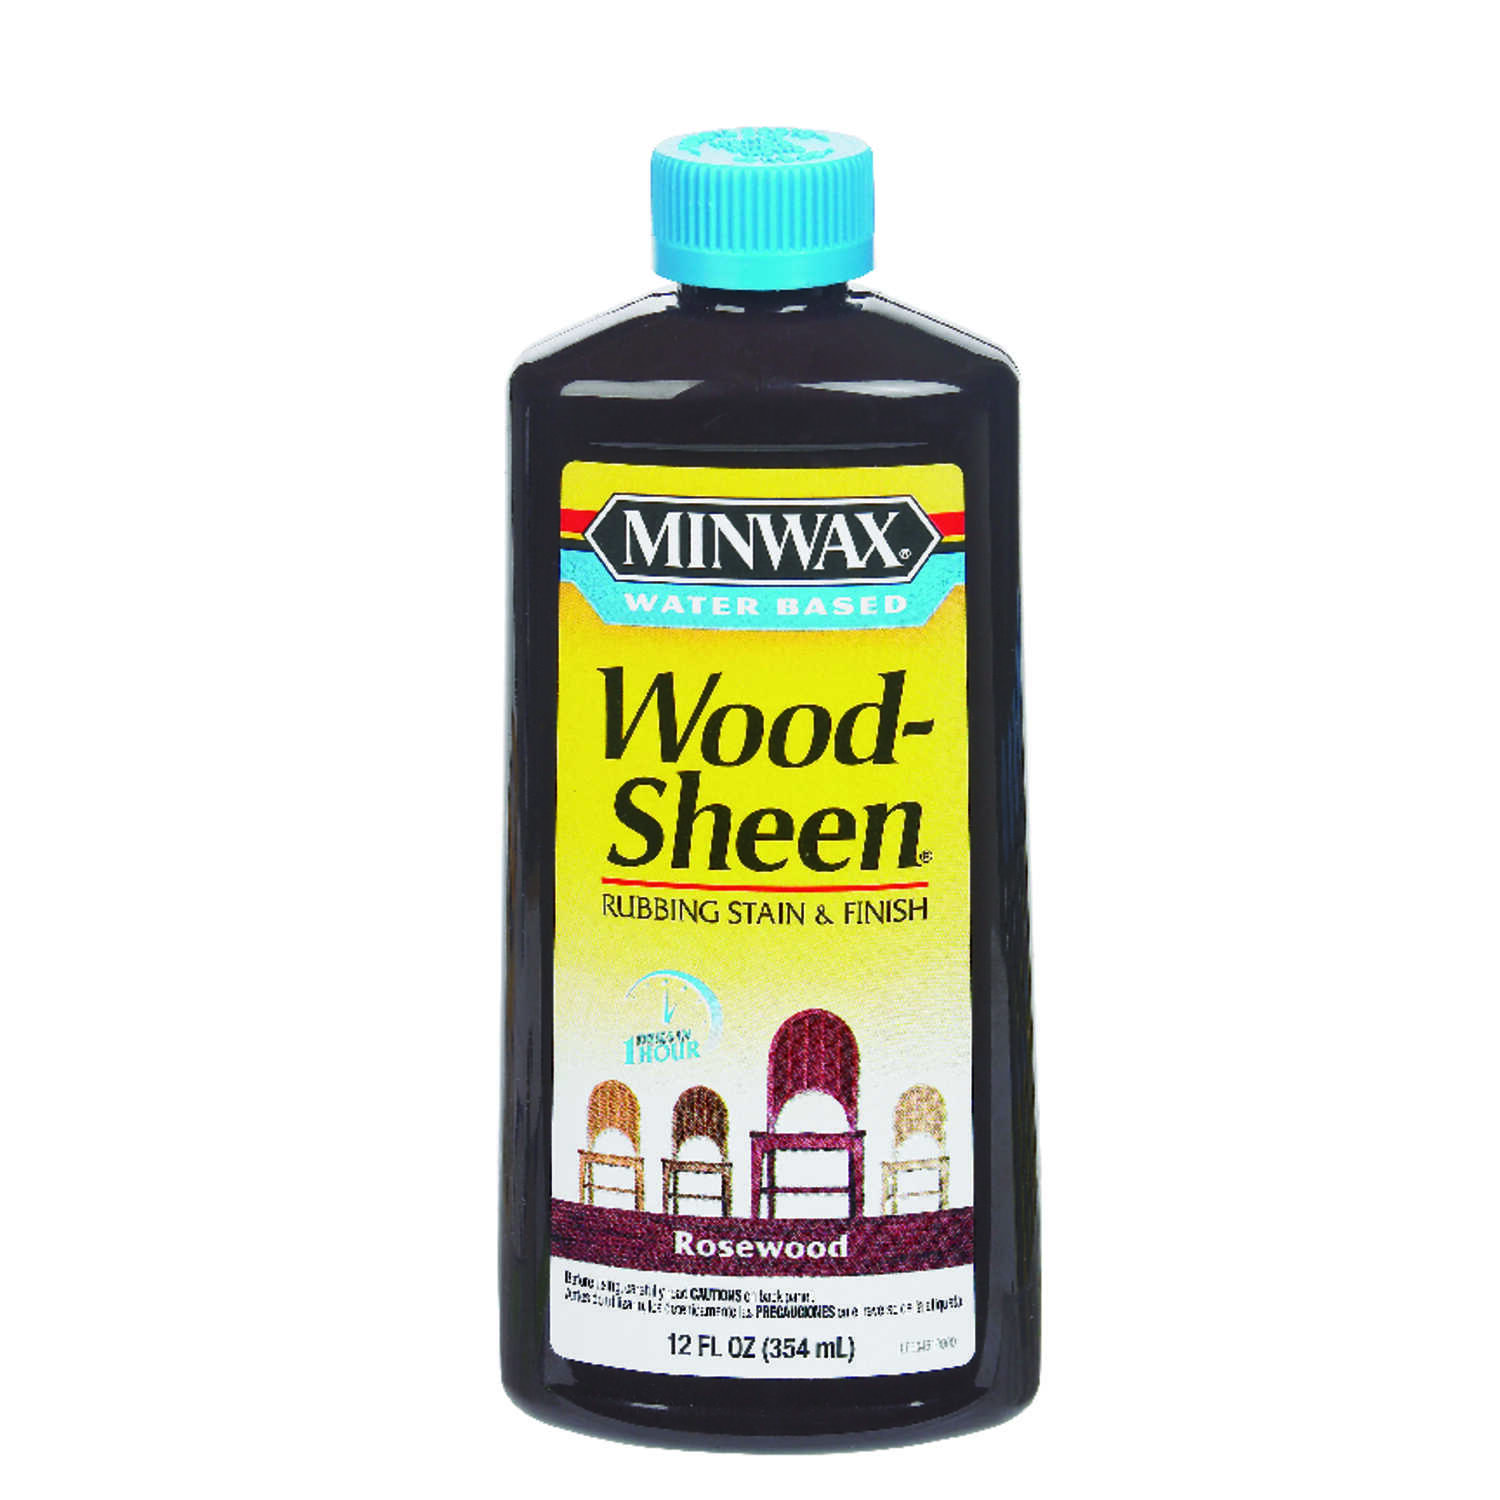 Minwax  Wood-Sheen  Transparent  Rosewood  Deep Base  Latex  Rubbing Stain and Finish  12 oz.